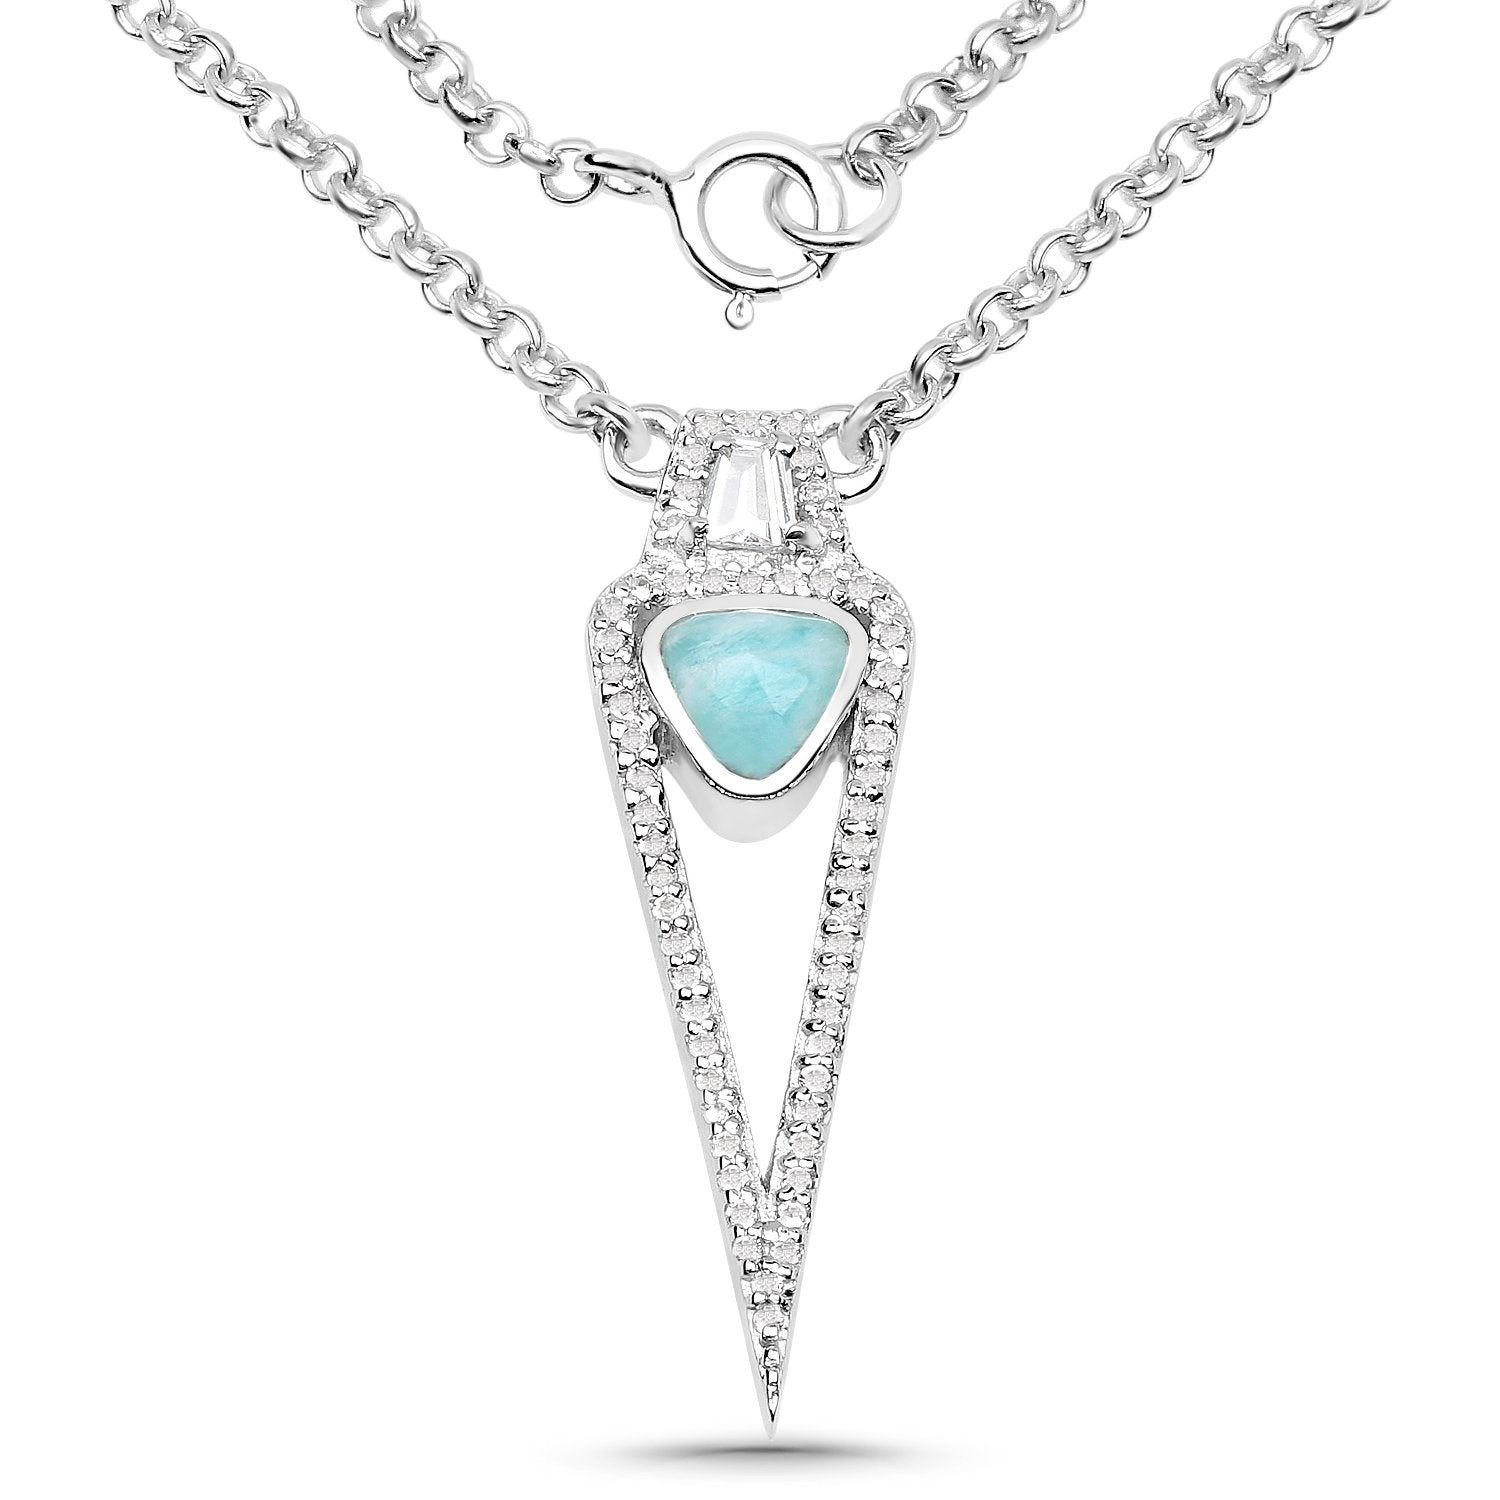 LoveHuang 0.79 Carats Genuine Amazonite and White Topaz Necklace Solid .925 Sterling Silver With Rhodium Plating, 18Inch Chain